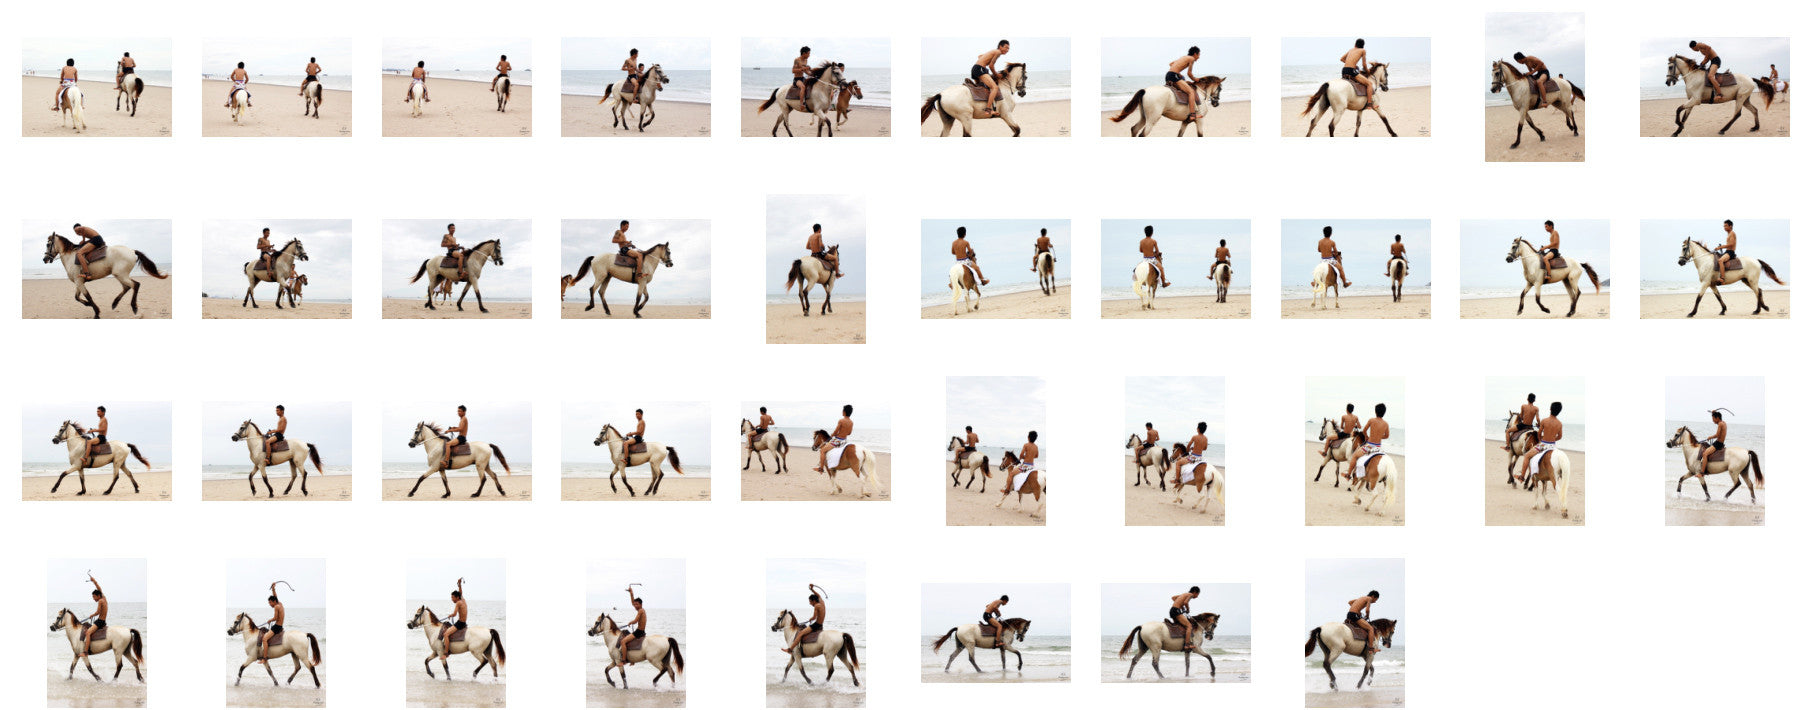 Thaksin in Black Spandex Riding with Saddle on Buckskin Horse, Part 5 - Riding.Vision